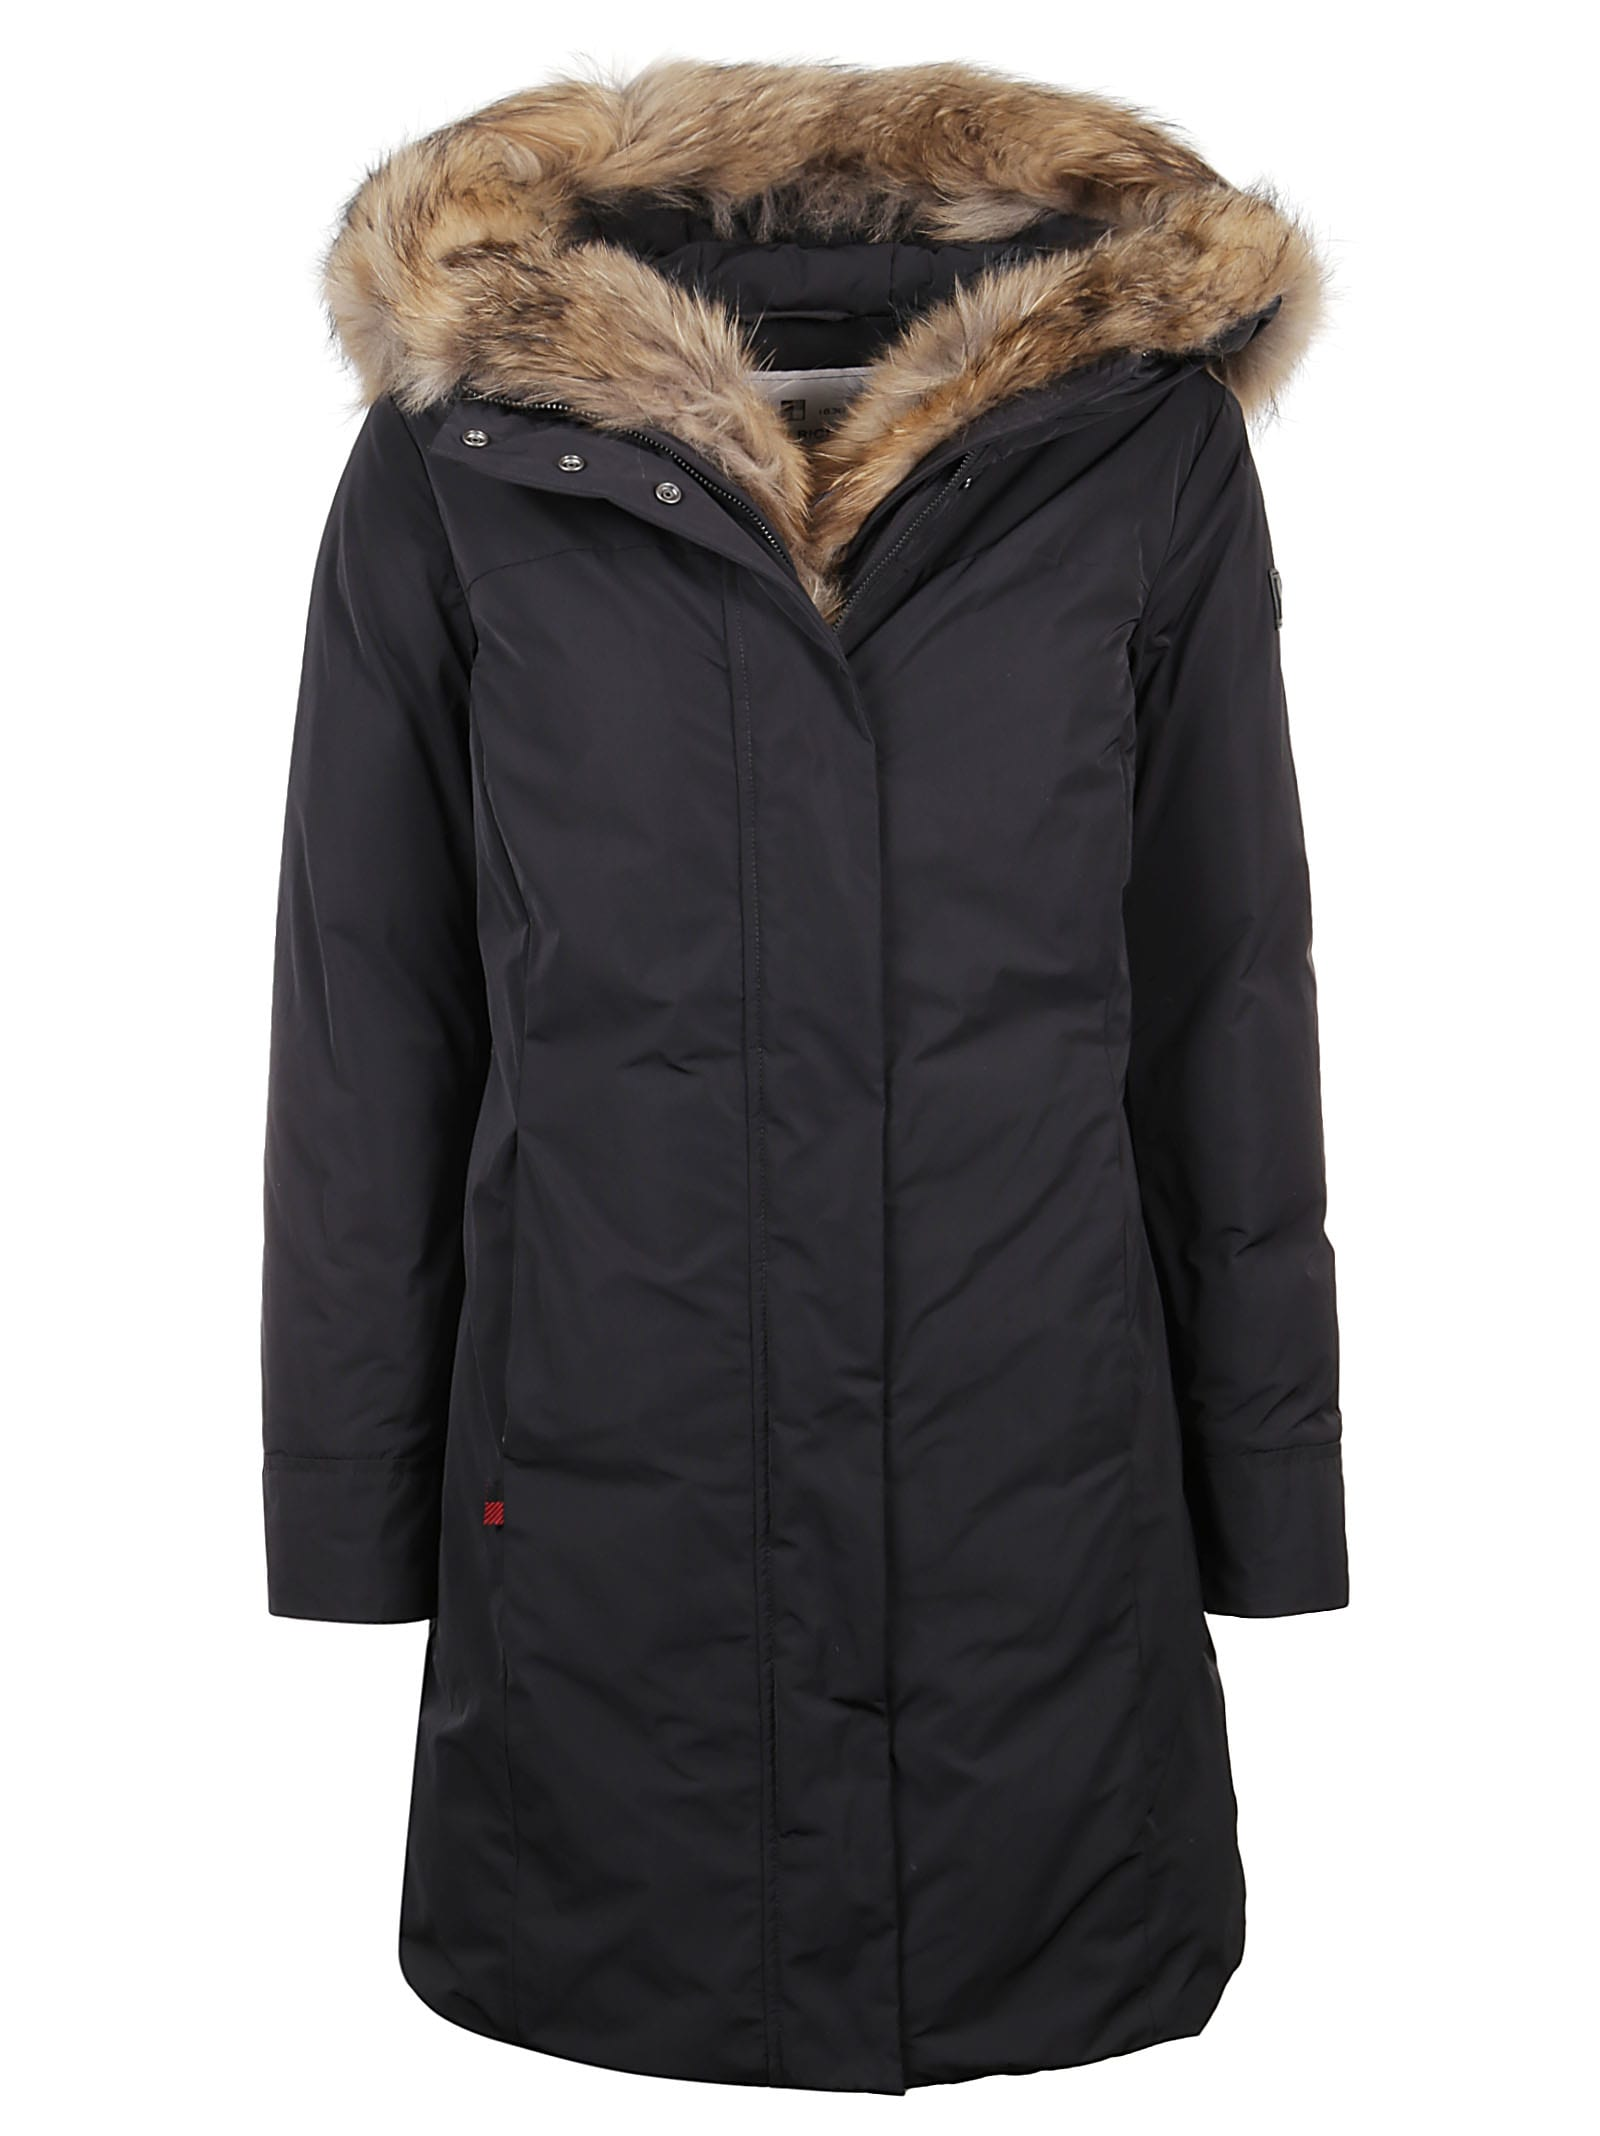 Photo of  Woolrich Piumino Luxury Boulder- shop Woolrich jackets online sales